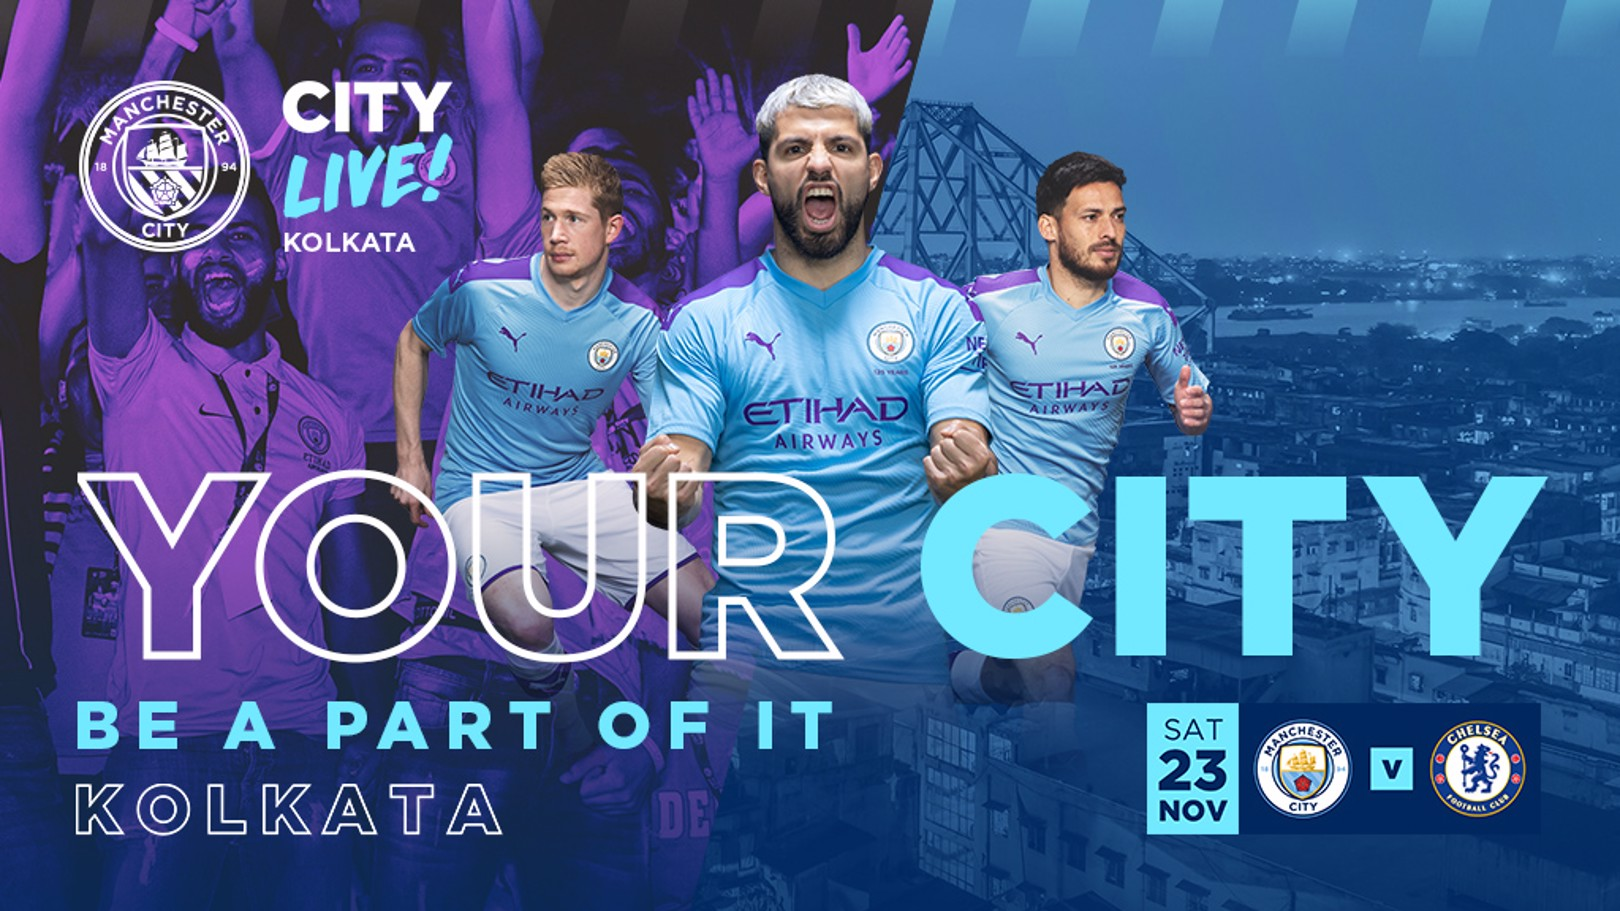 City Live! returning to Kolkata